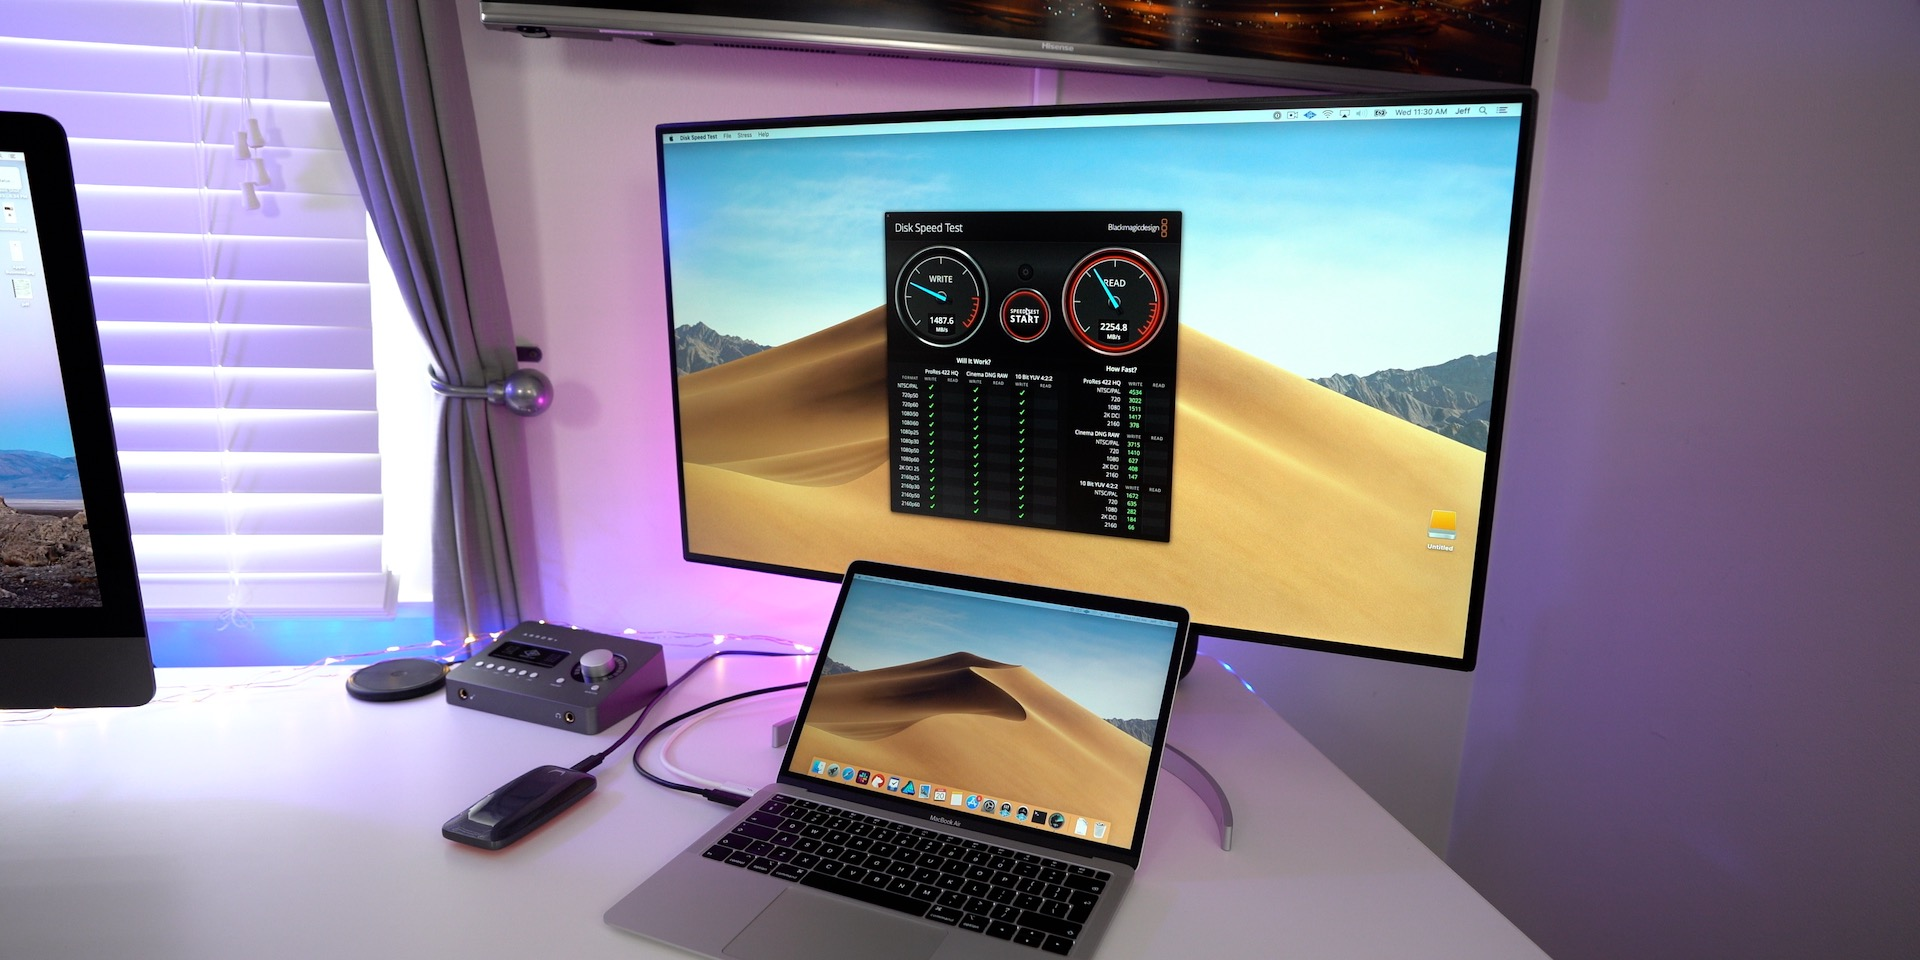 LG 32UL950 UltraFine 4K Display Review SSD Speed Test Thunderbolt 3